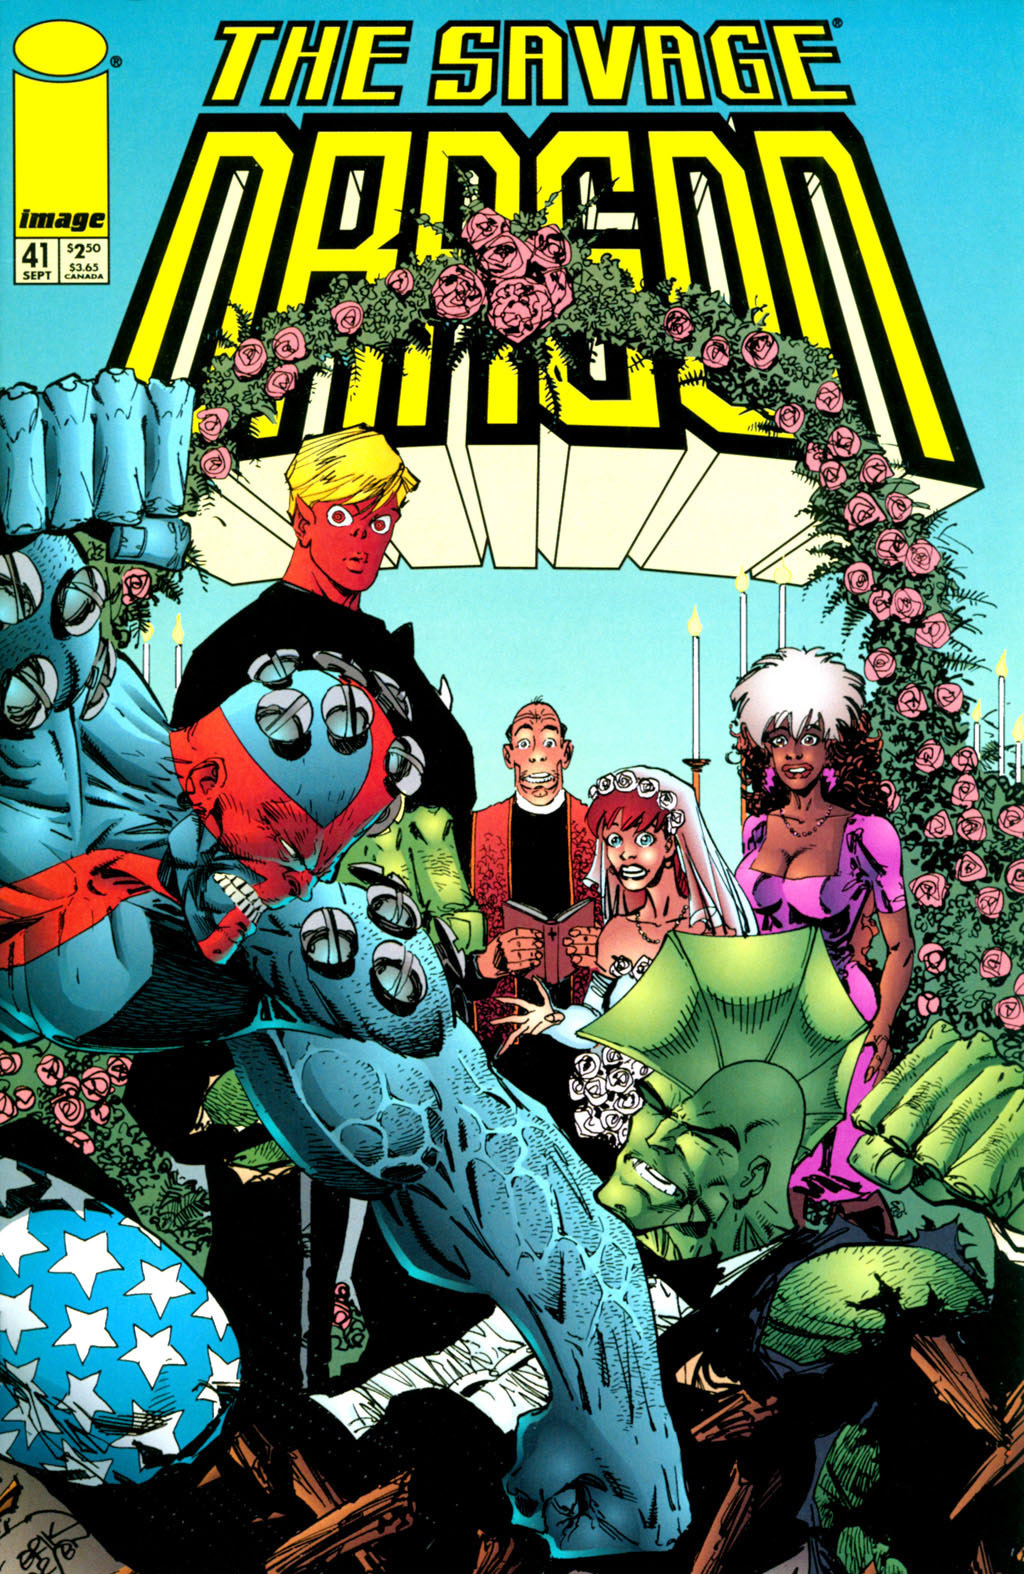 Cover Savage Dragon Vol.2 #41